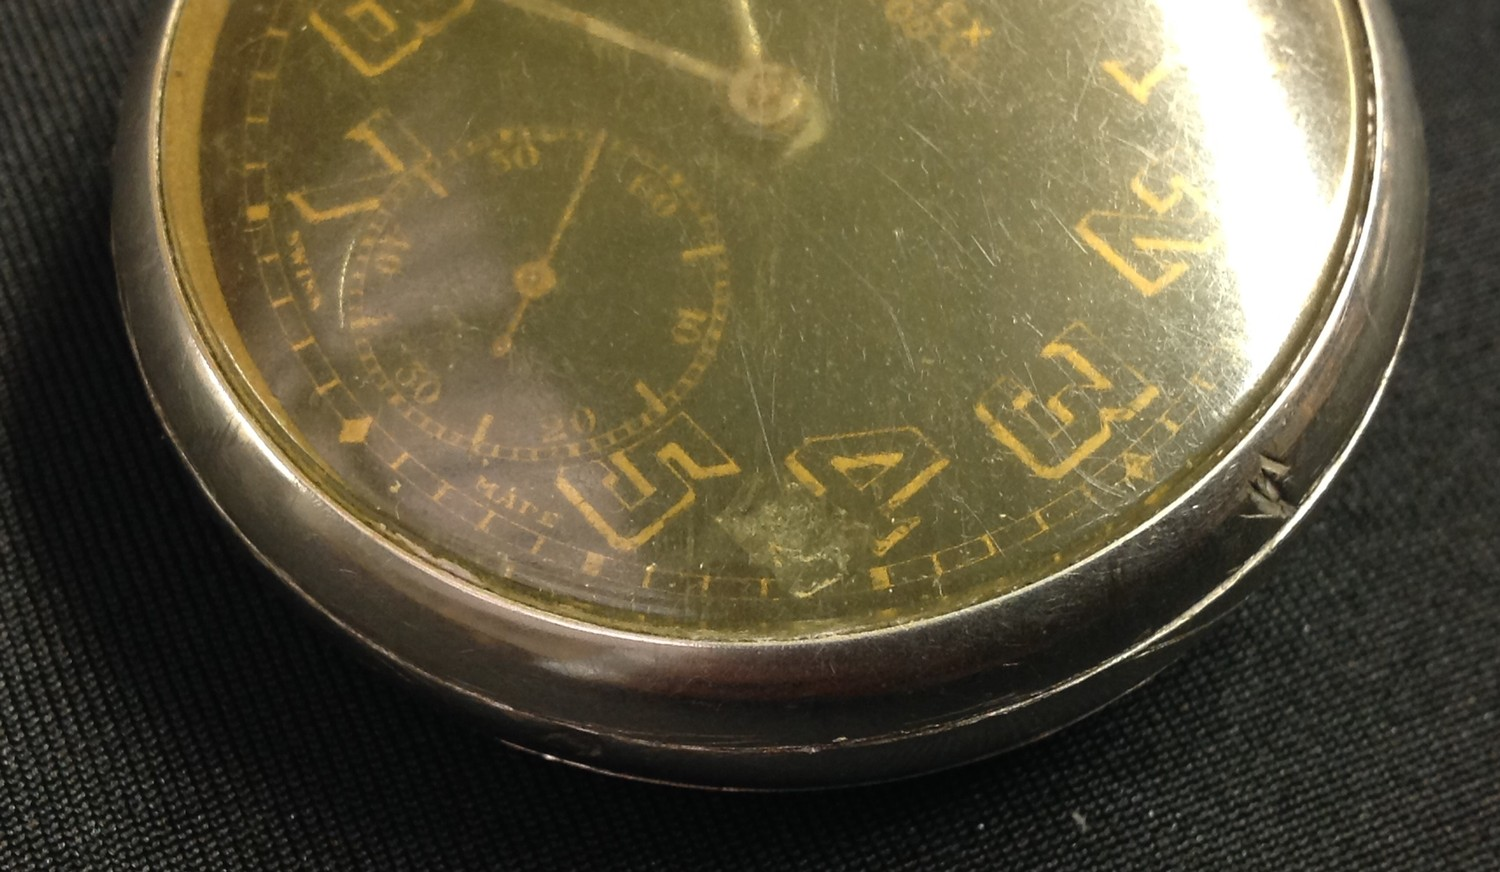 WW2 'Military' style private purchase Rolex A10030 open faced pocket watch, black enamel dial gold - Image 6 of 10